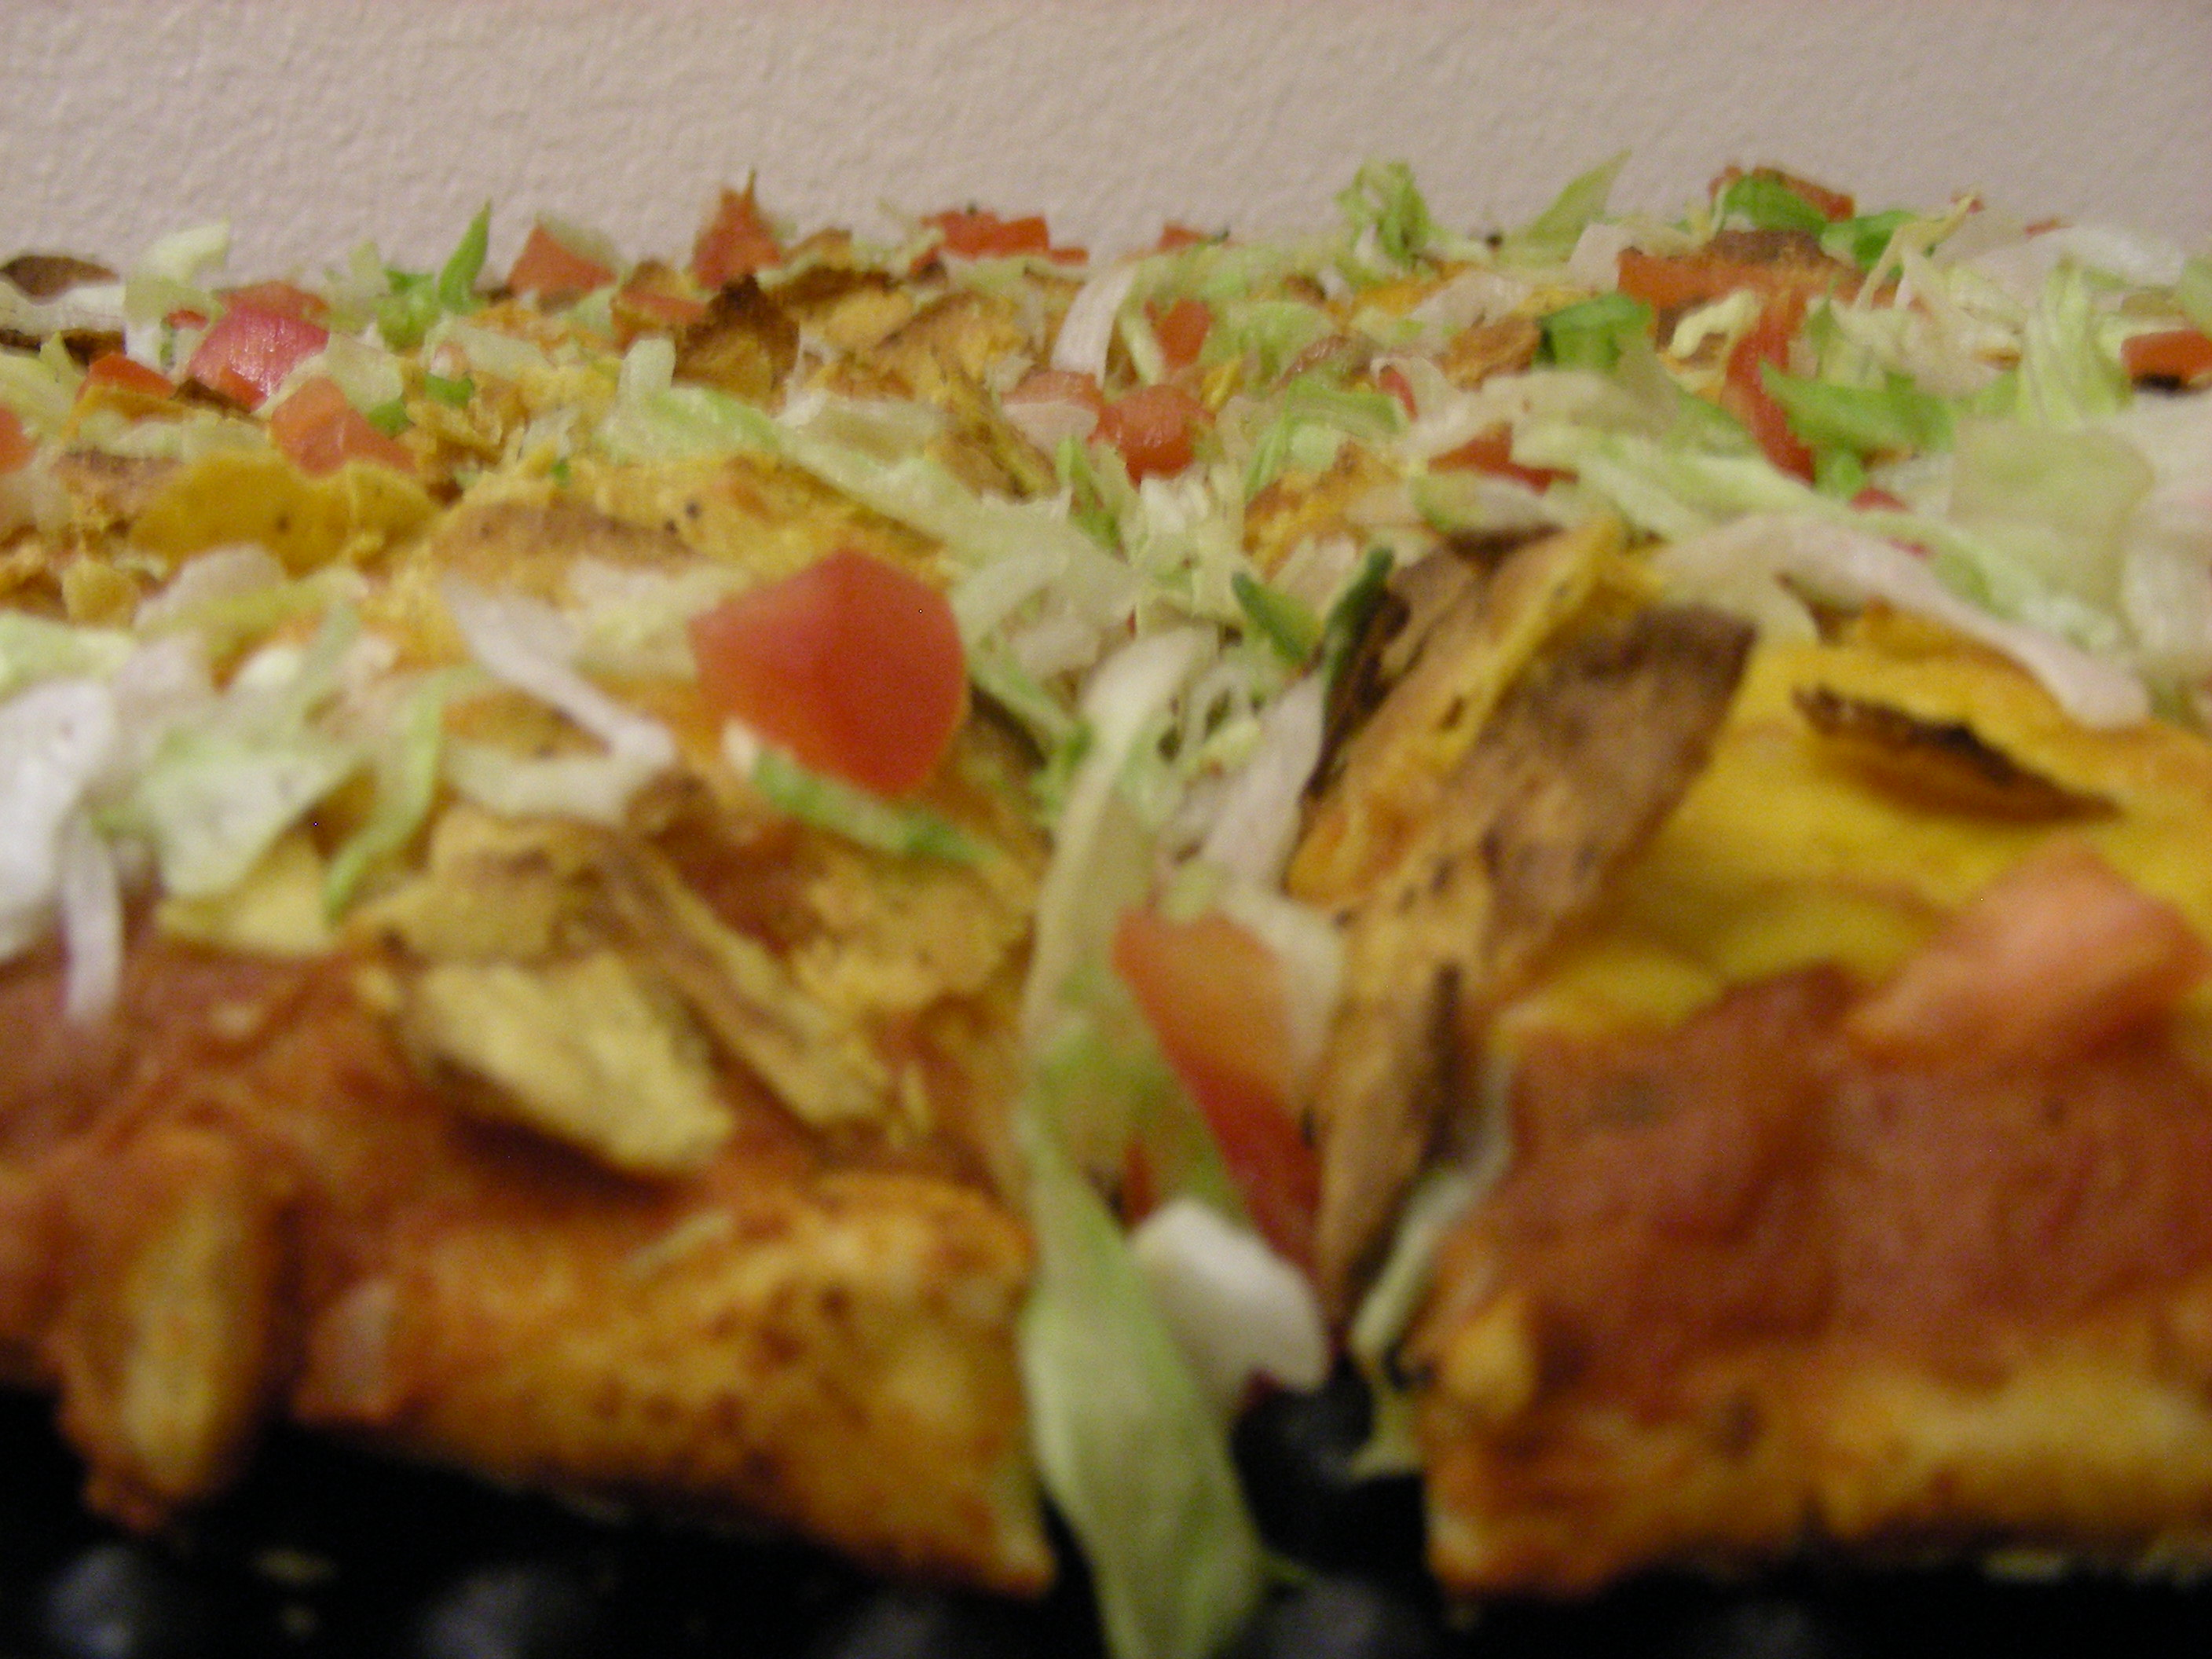 Lotta Tostada Pizza (Refried Beans, Cheddar Cheese, Lettuce, Diced Tomatoes, and Salsa)